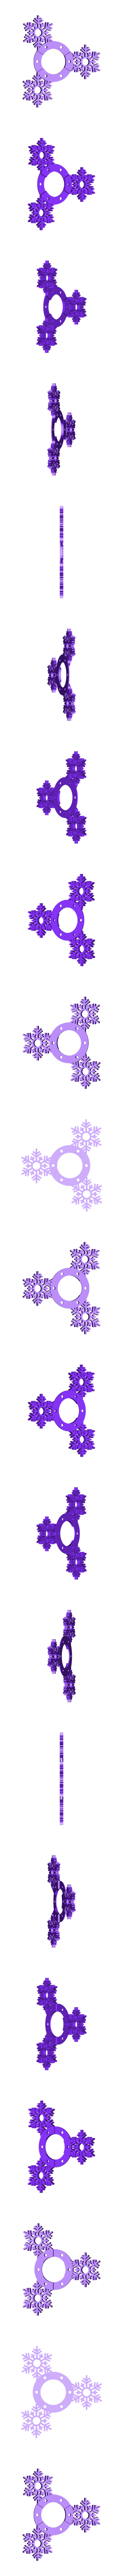 Xmas_Spinner_-_Flake.stl Download free STL file Christmas Spinners • Model to 3D print, Zippityboomba